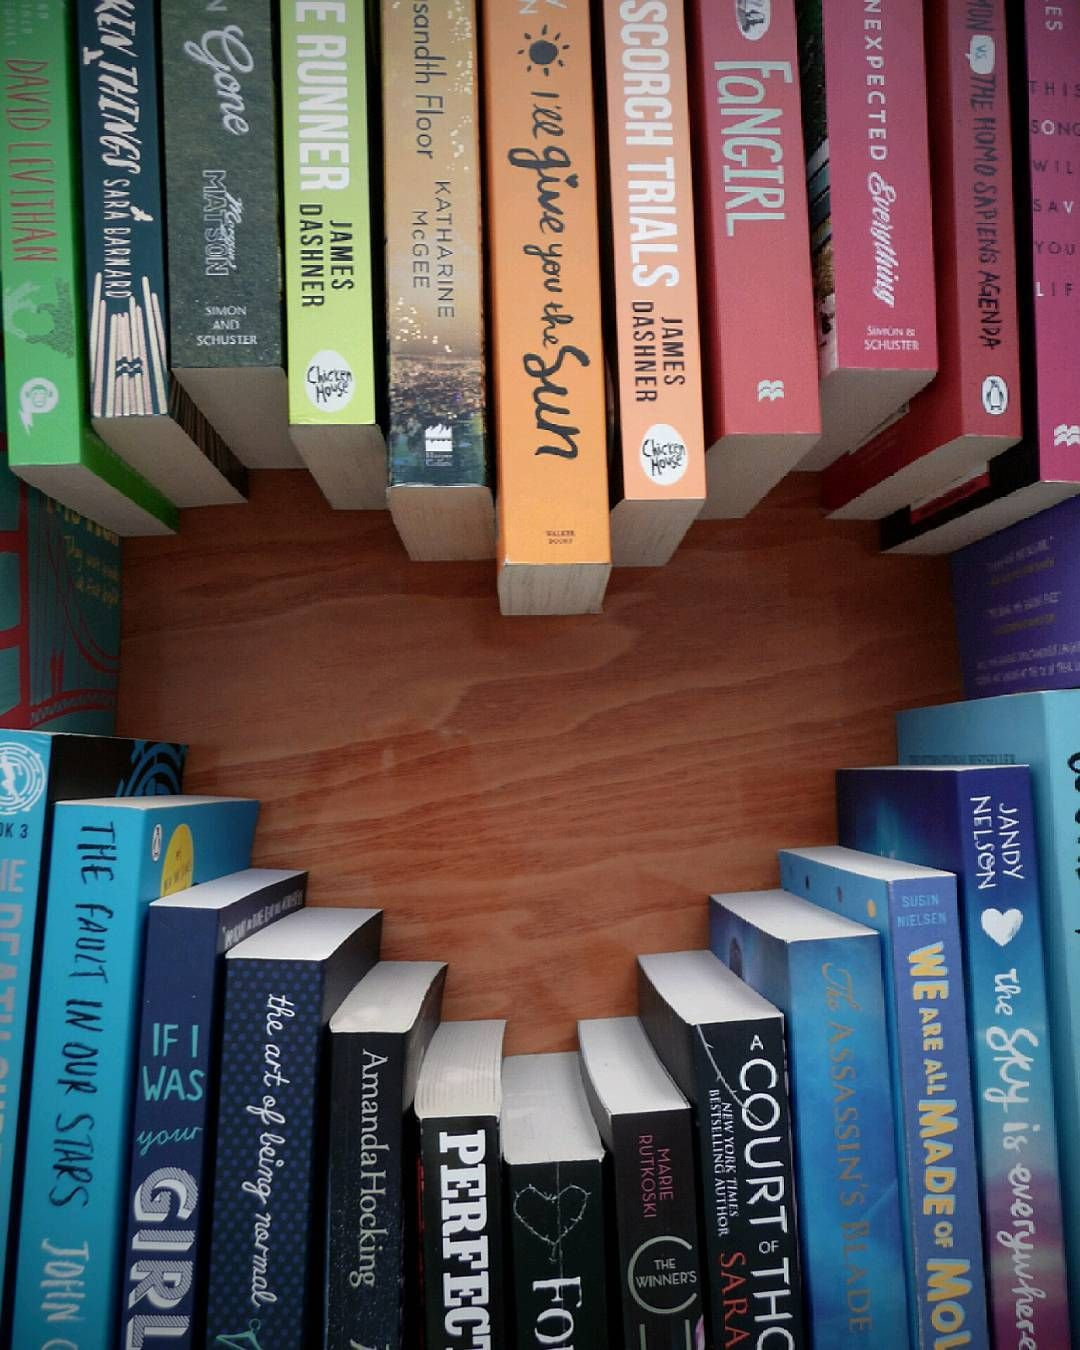 Libros De Series Bookishheart Instagram Photos And Videos Books